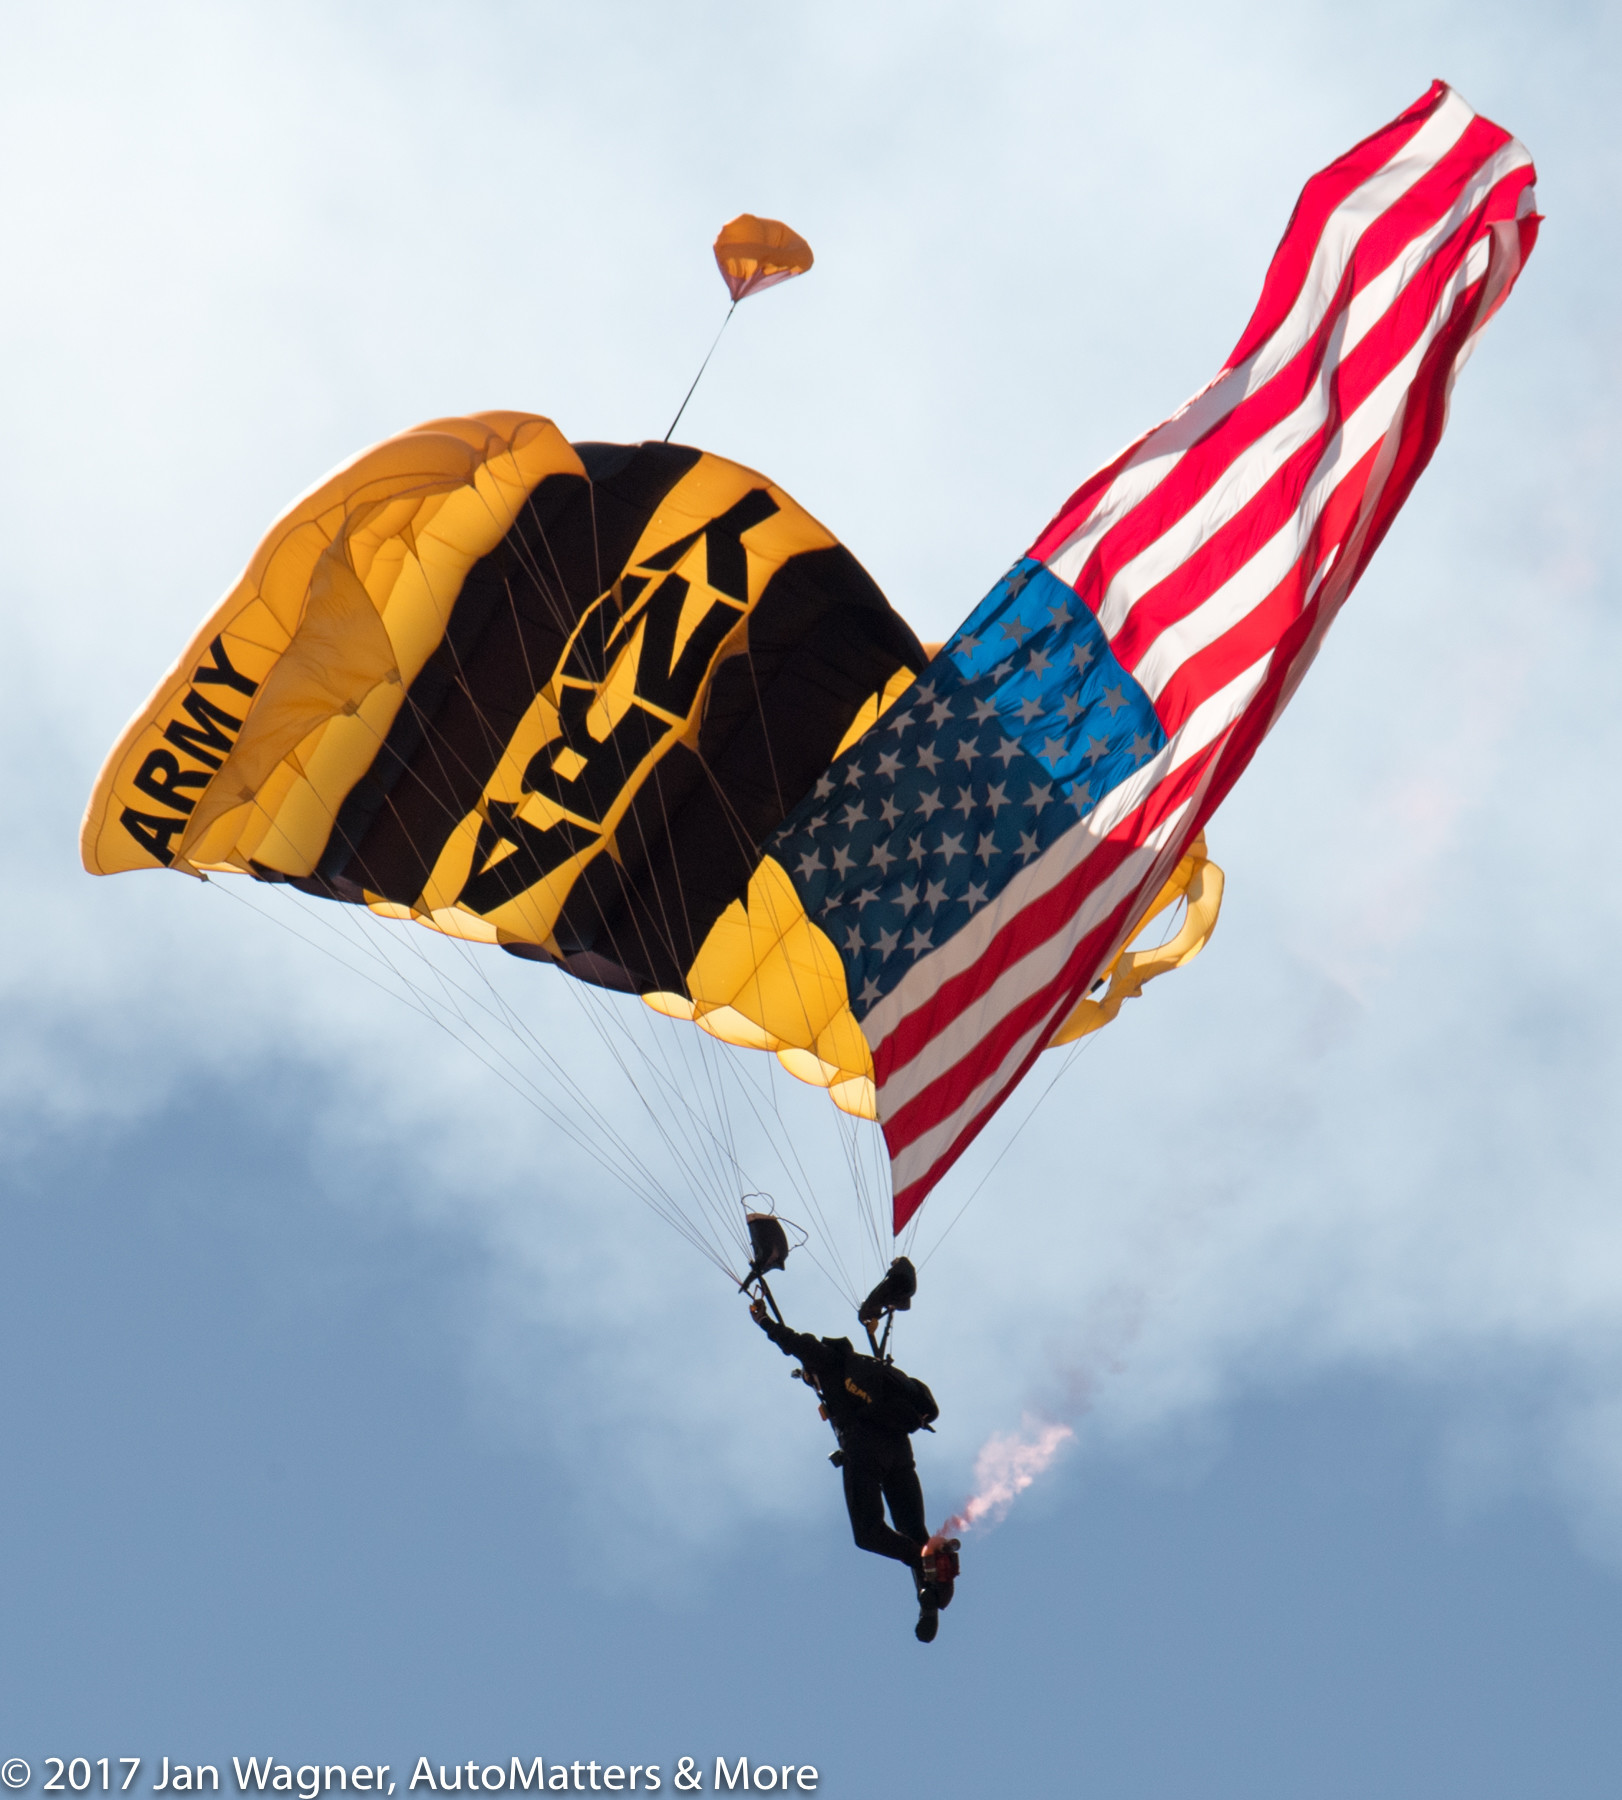 U.S. Army Golden Knights parachute team member